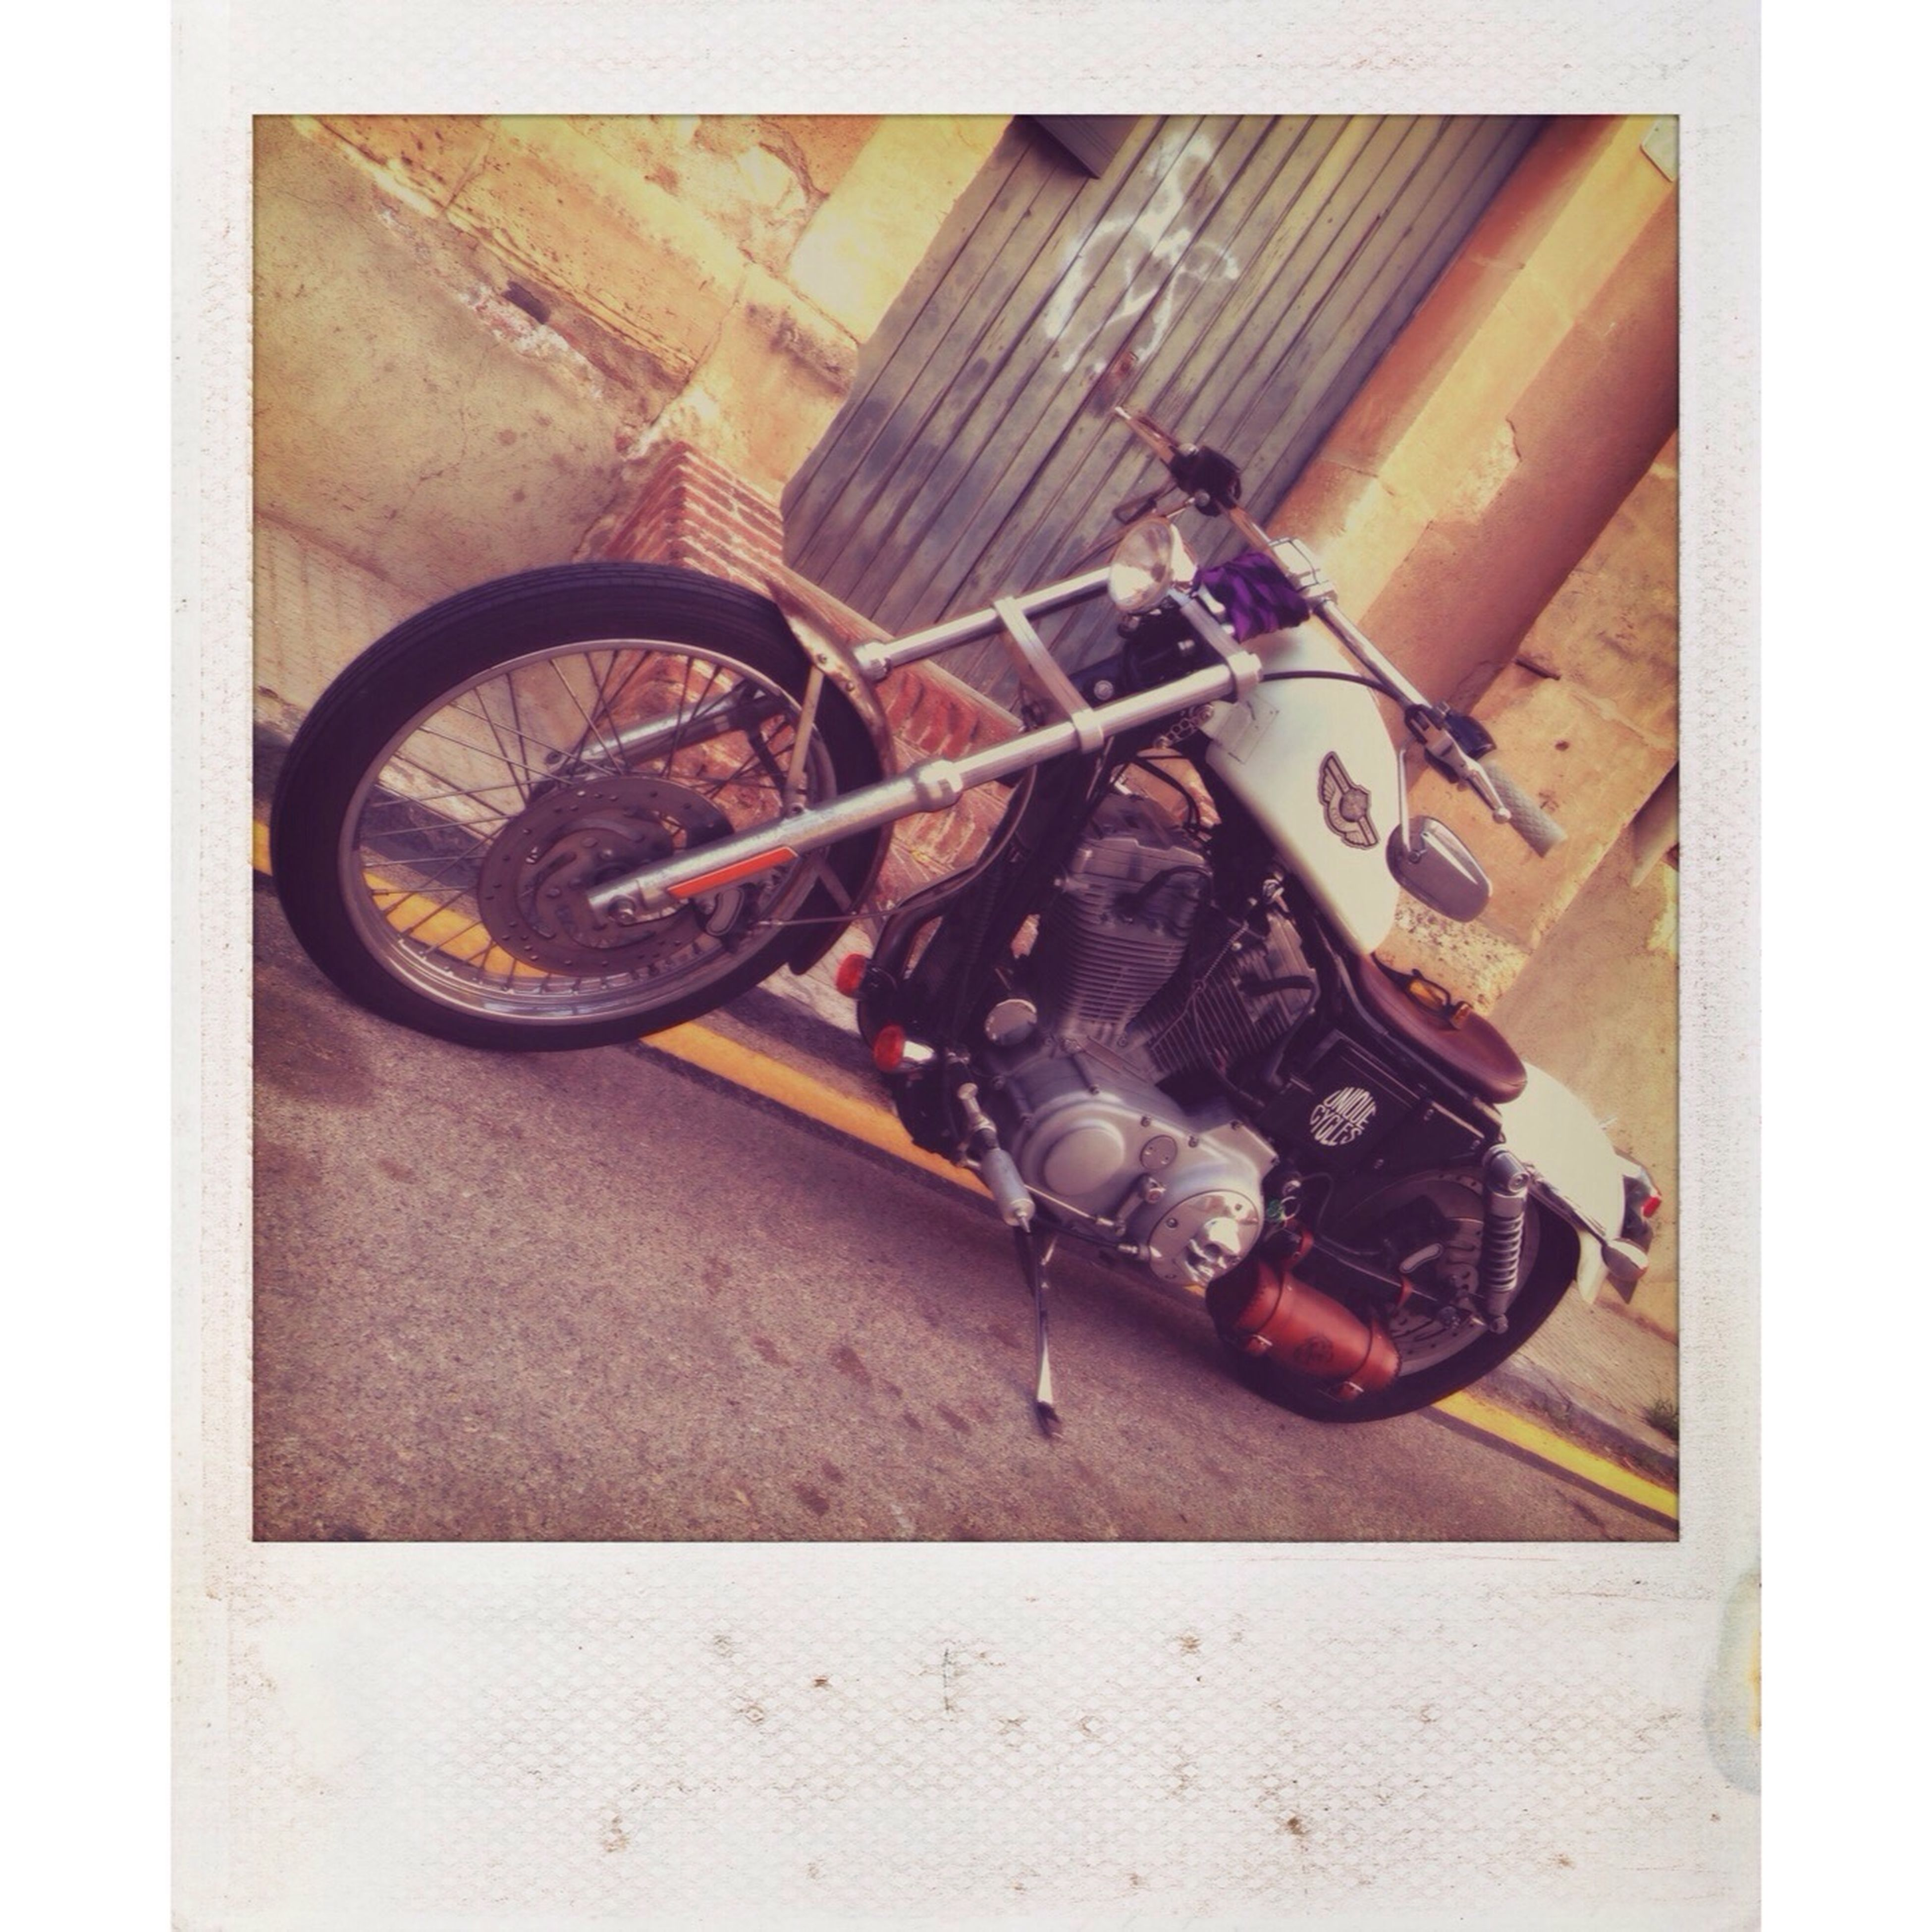 transfer print, auto post production filter, transportation, land vehicle, mode of transport, retro styled, old-fashioned, indoors, technology, metal, stationary, old, close-up, high angle view, no people, machinery, equipment, day, bicycle, wall - building feature